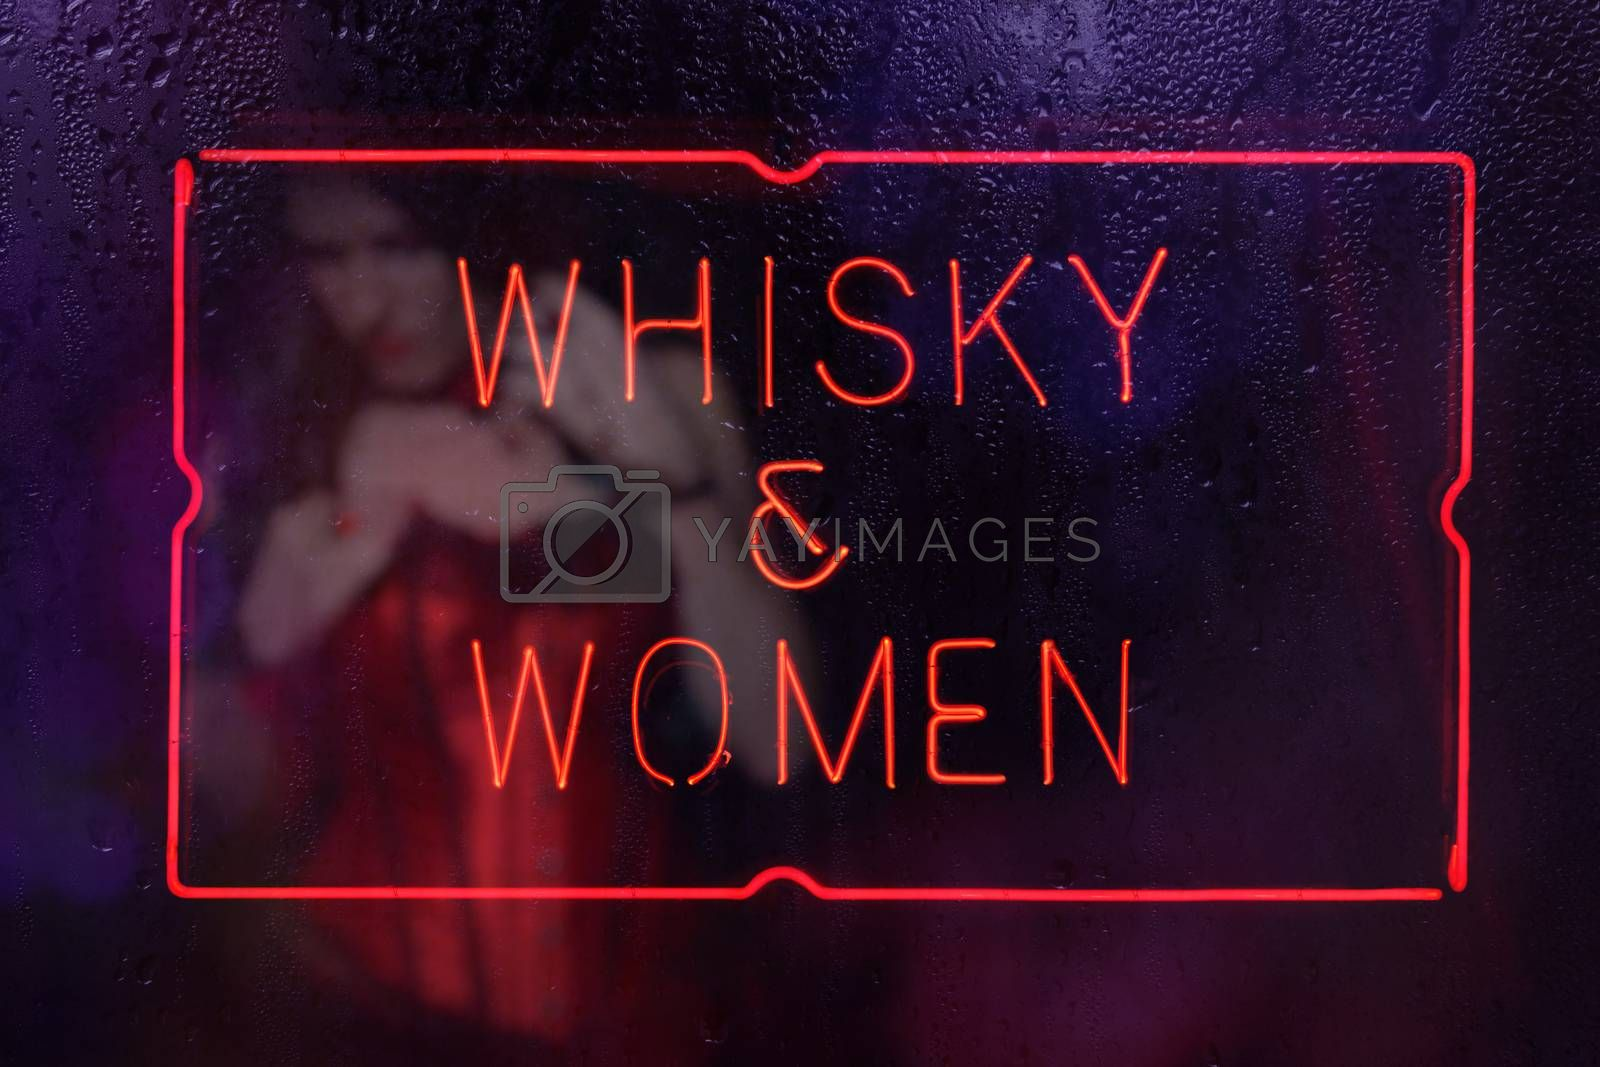 Vintage Neon Whisky and Women Sign in Rainy Window